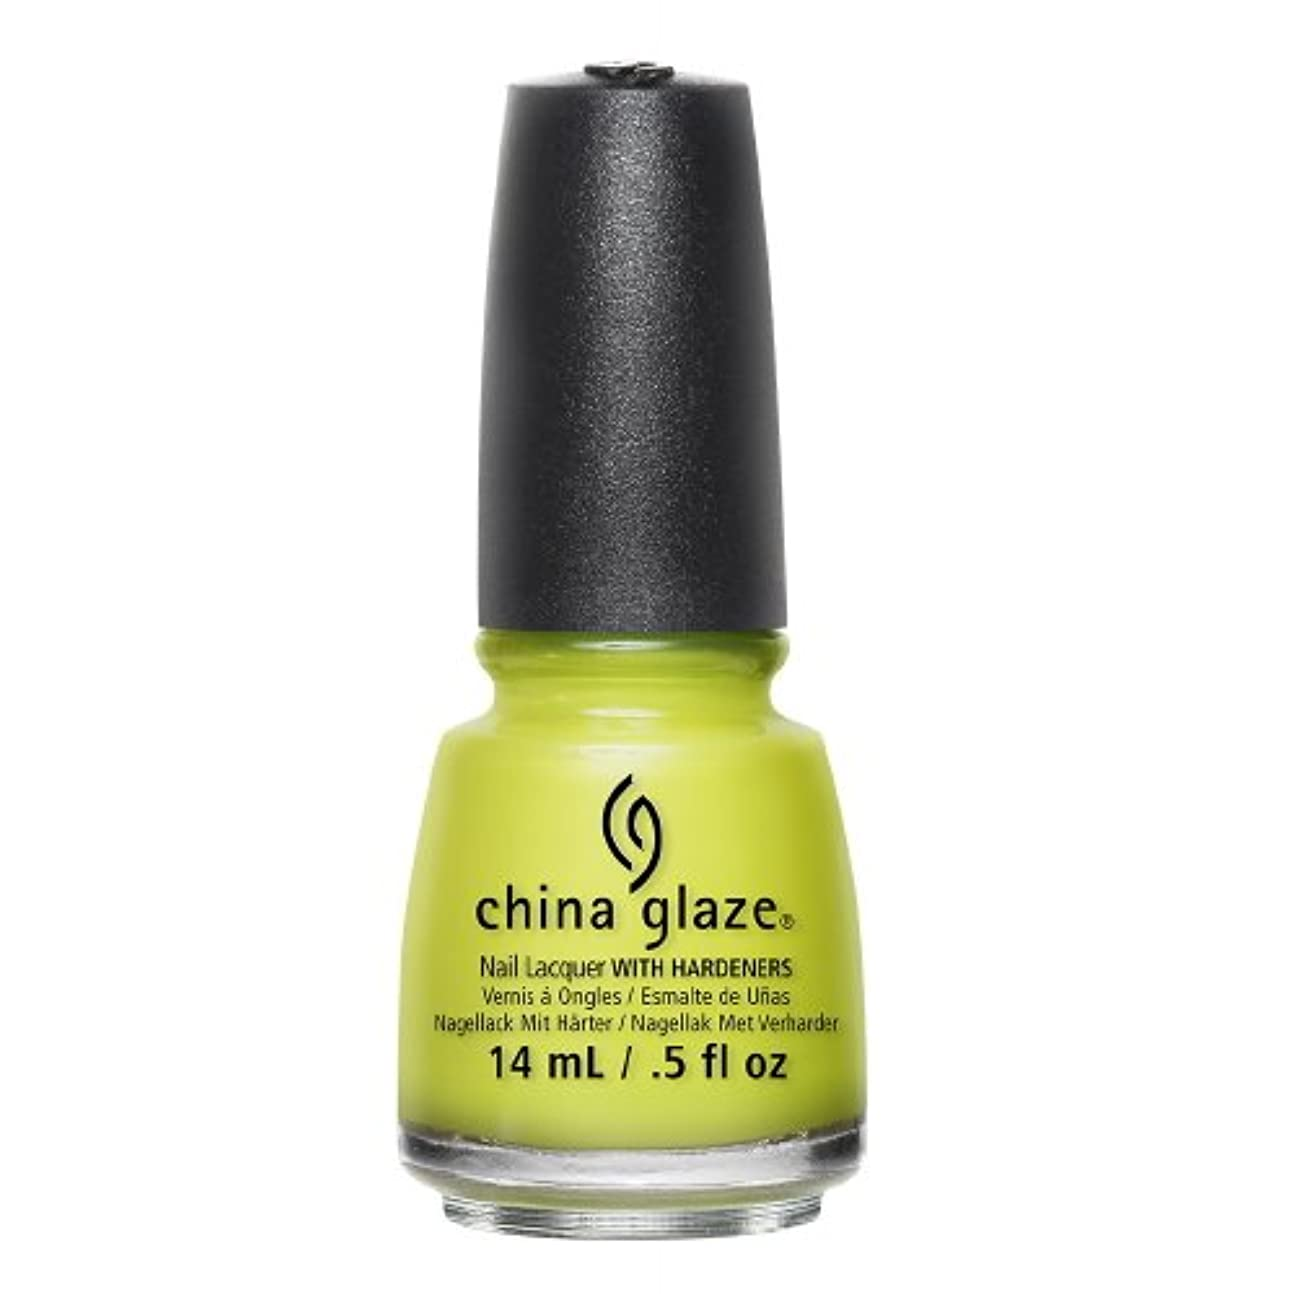 苦しみめまいが誘惑(3 Pack) CHINA GLAZE Nail Lacquer - Road Trip - Trip of A Limetime (並行輸入品)